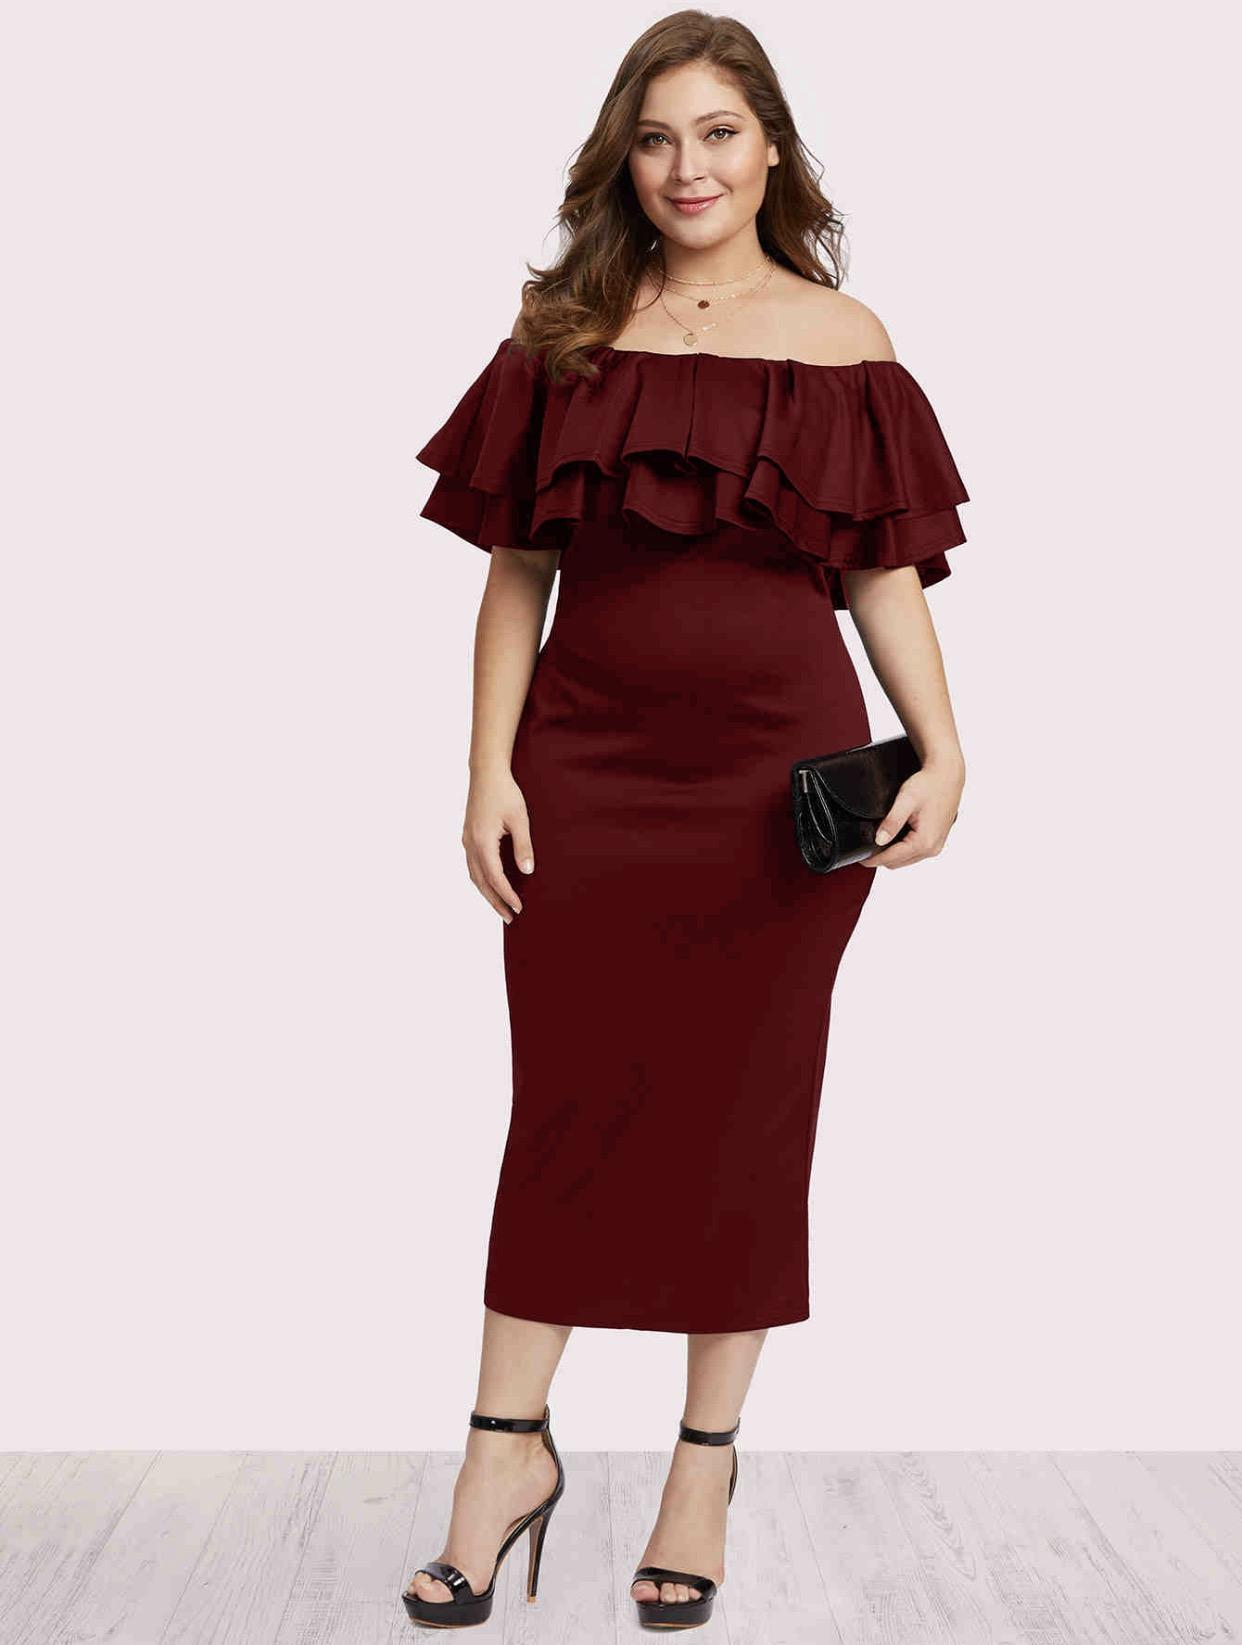 38fca19514 Plus Size Dresses for sale - Plus Size Maxi Dress Online Deals ...